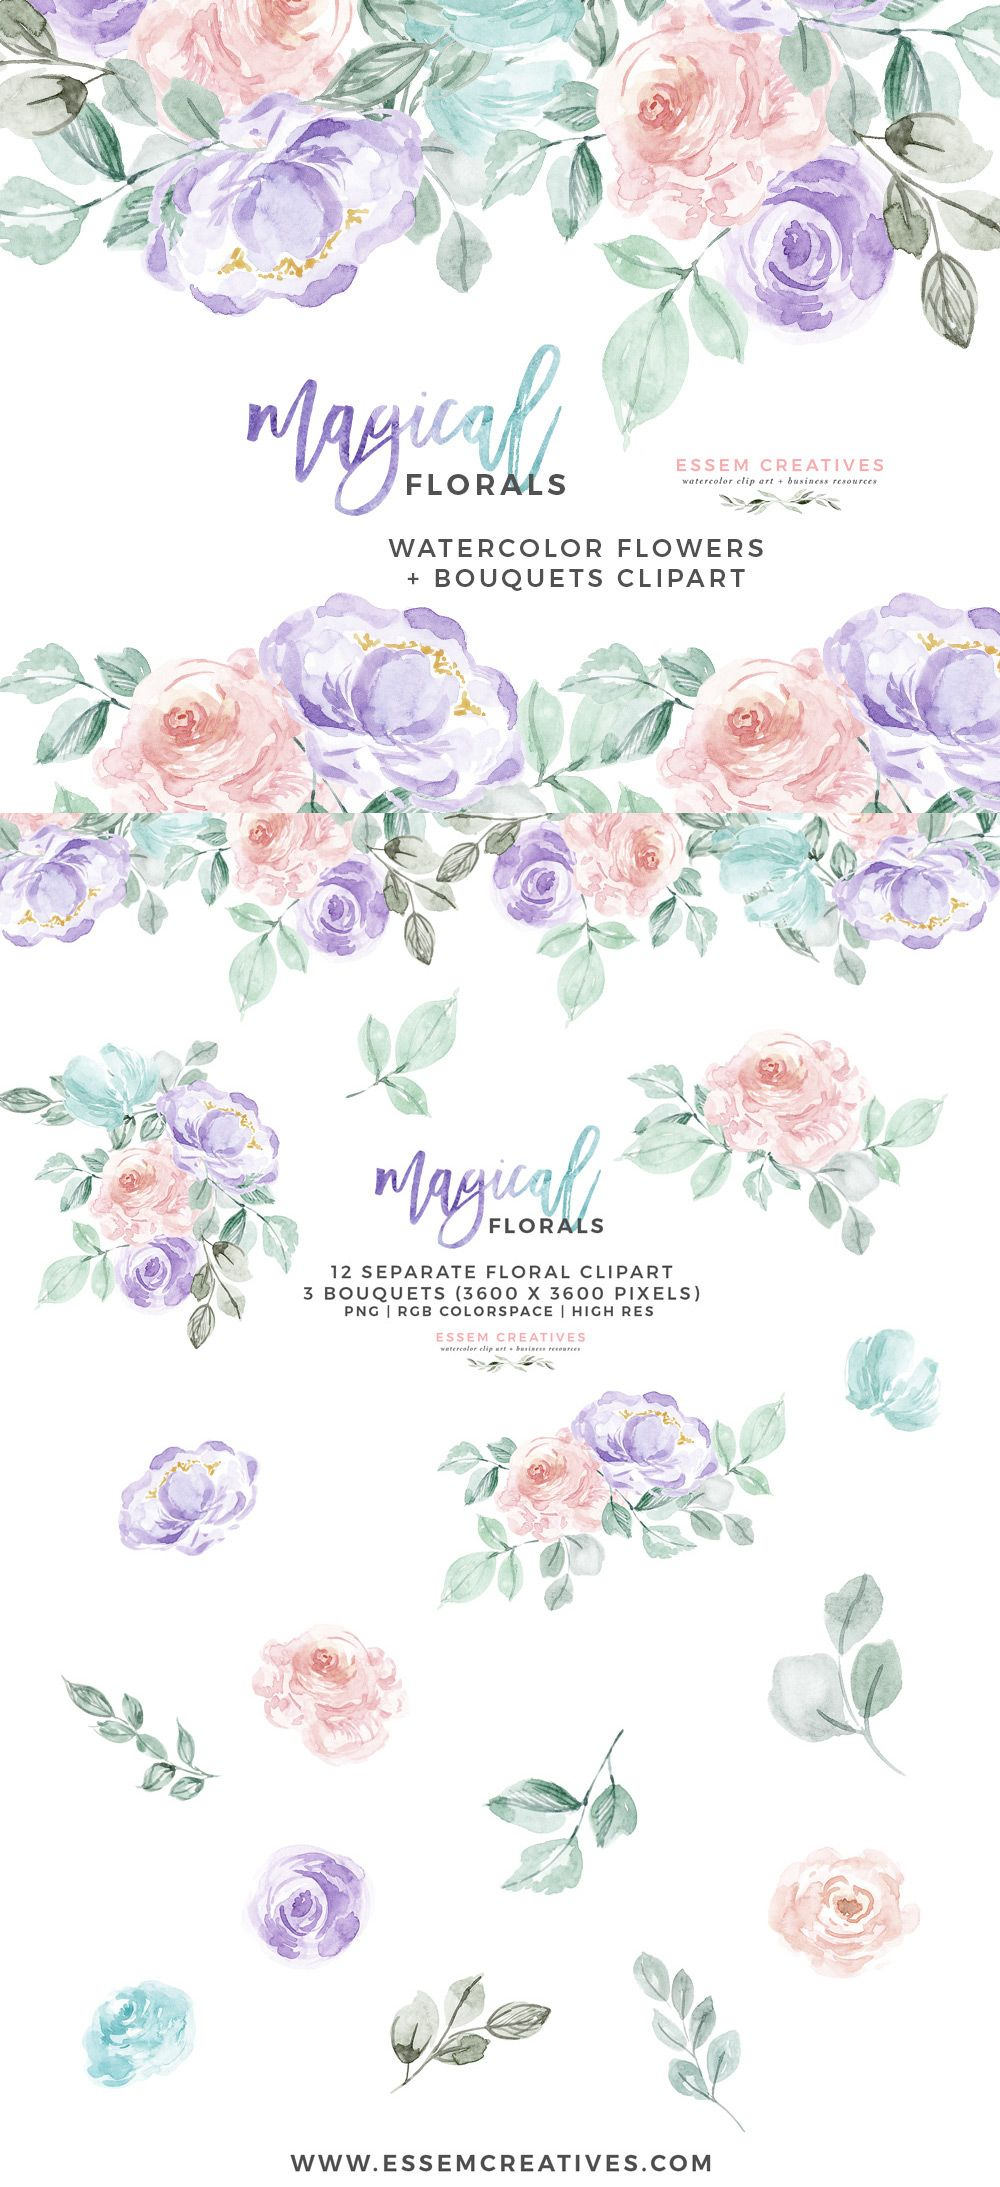 Teal and purple floral clipart image stock Watercolor Flowers Clipart PNG with transparent background ... image stock